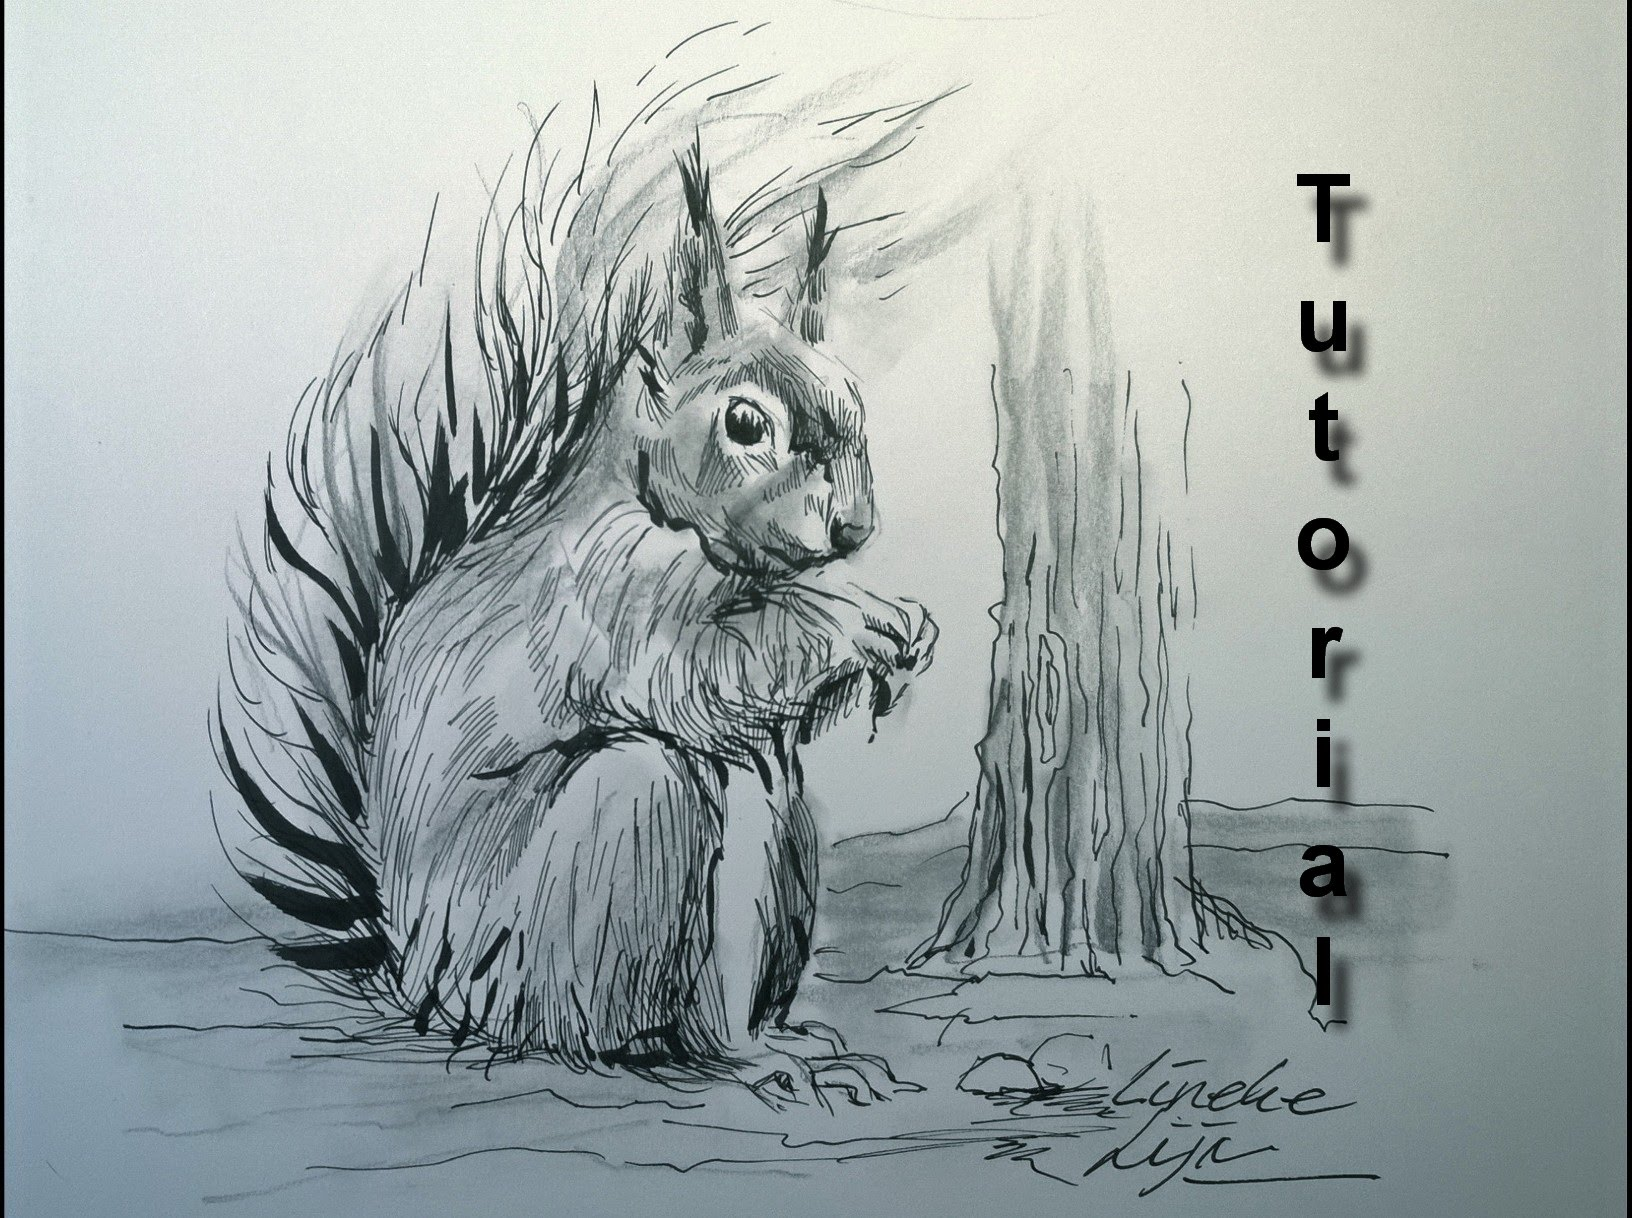 Drawn squirrel furry animal Ink a furry easy tutorial